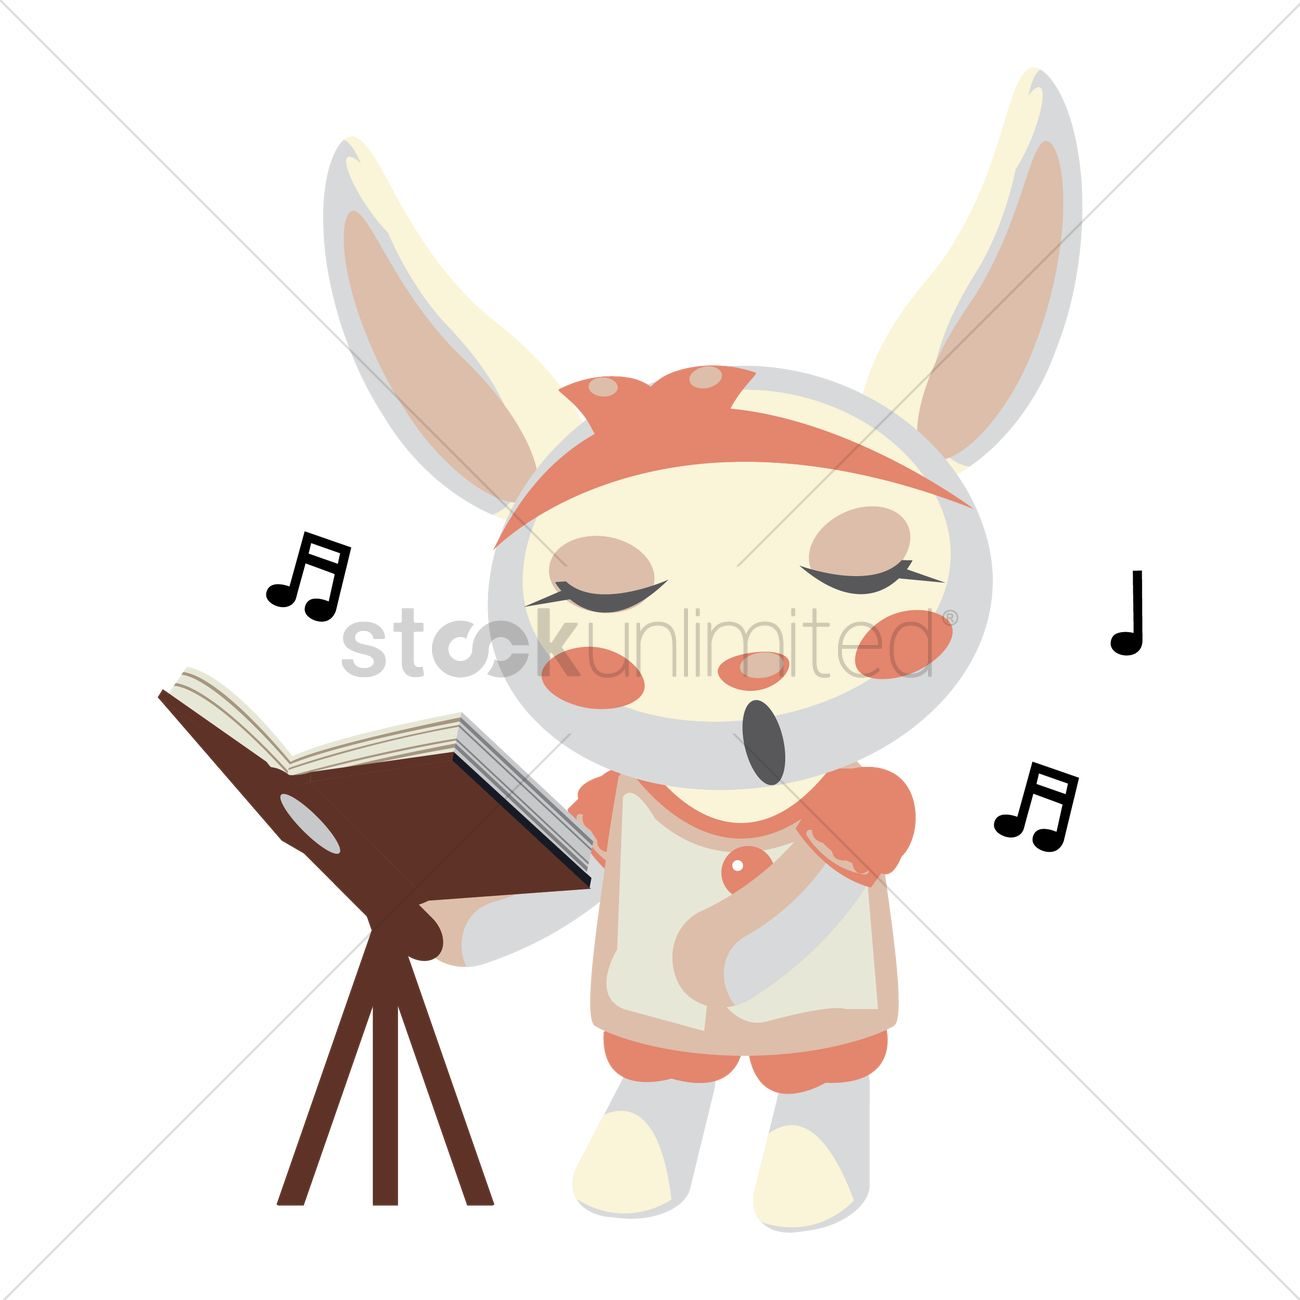 Free Bunny Singing Vector Image 1279302 Stockunlimited